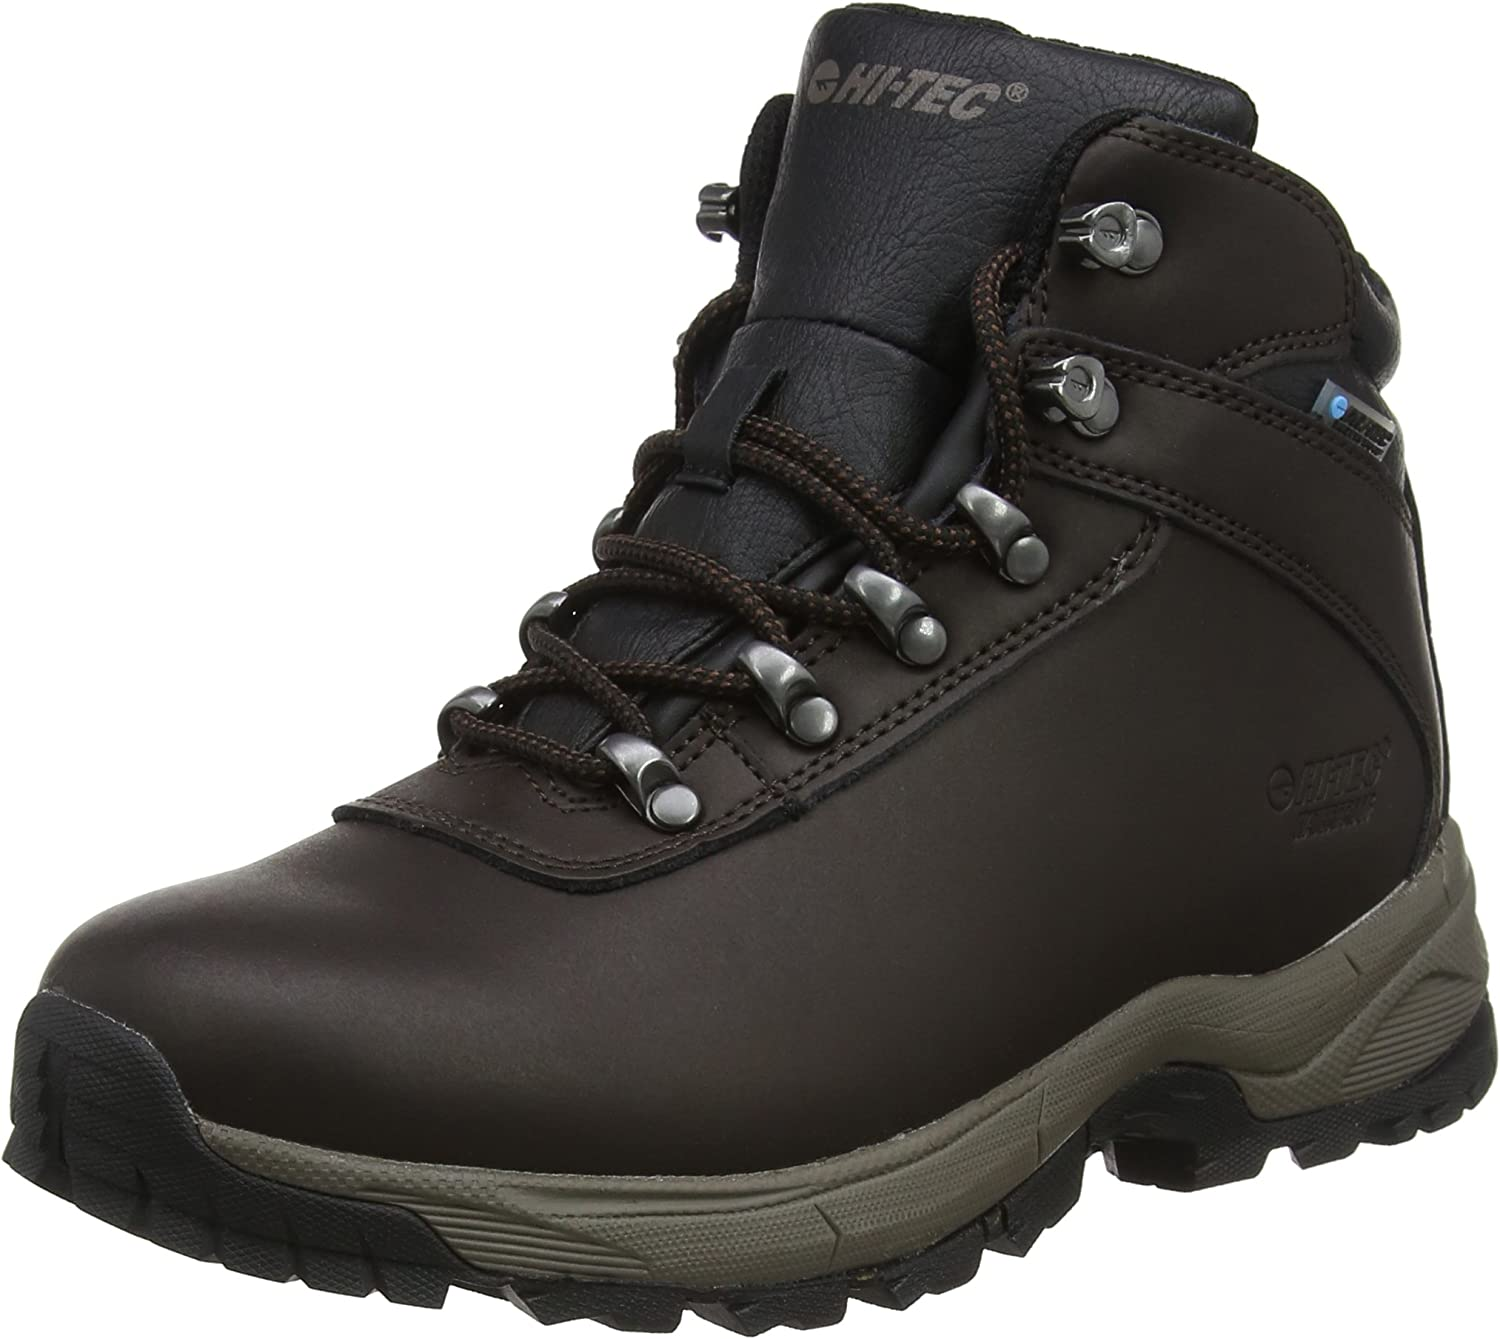 Hi-Tec Euredrek Lite Waterproof Women's Walking Boots - SS19